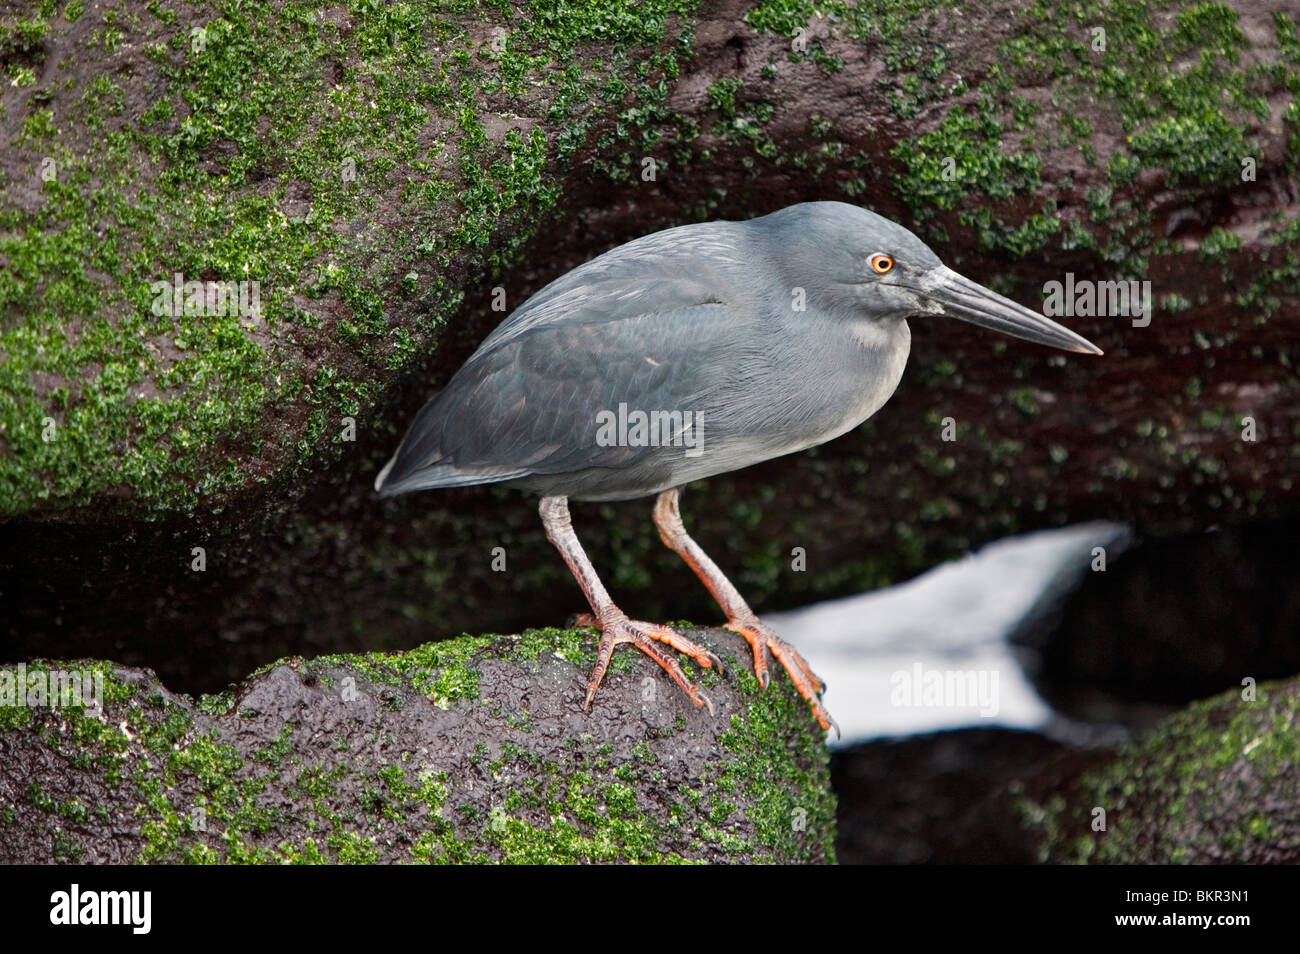 Galapagos Islands, A lava heron in characteristic hunched pose on Espanola island. - Stock Image